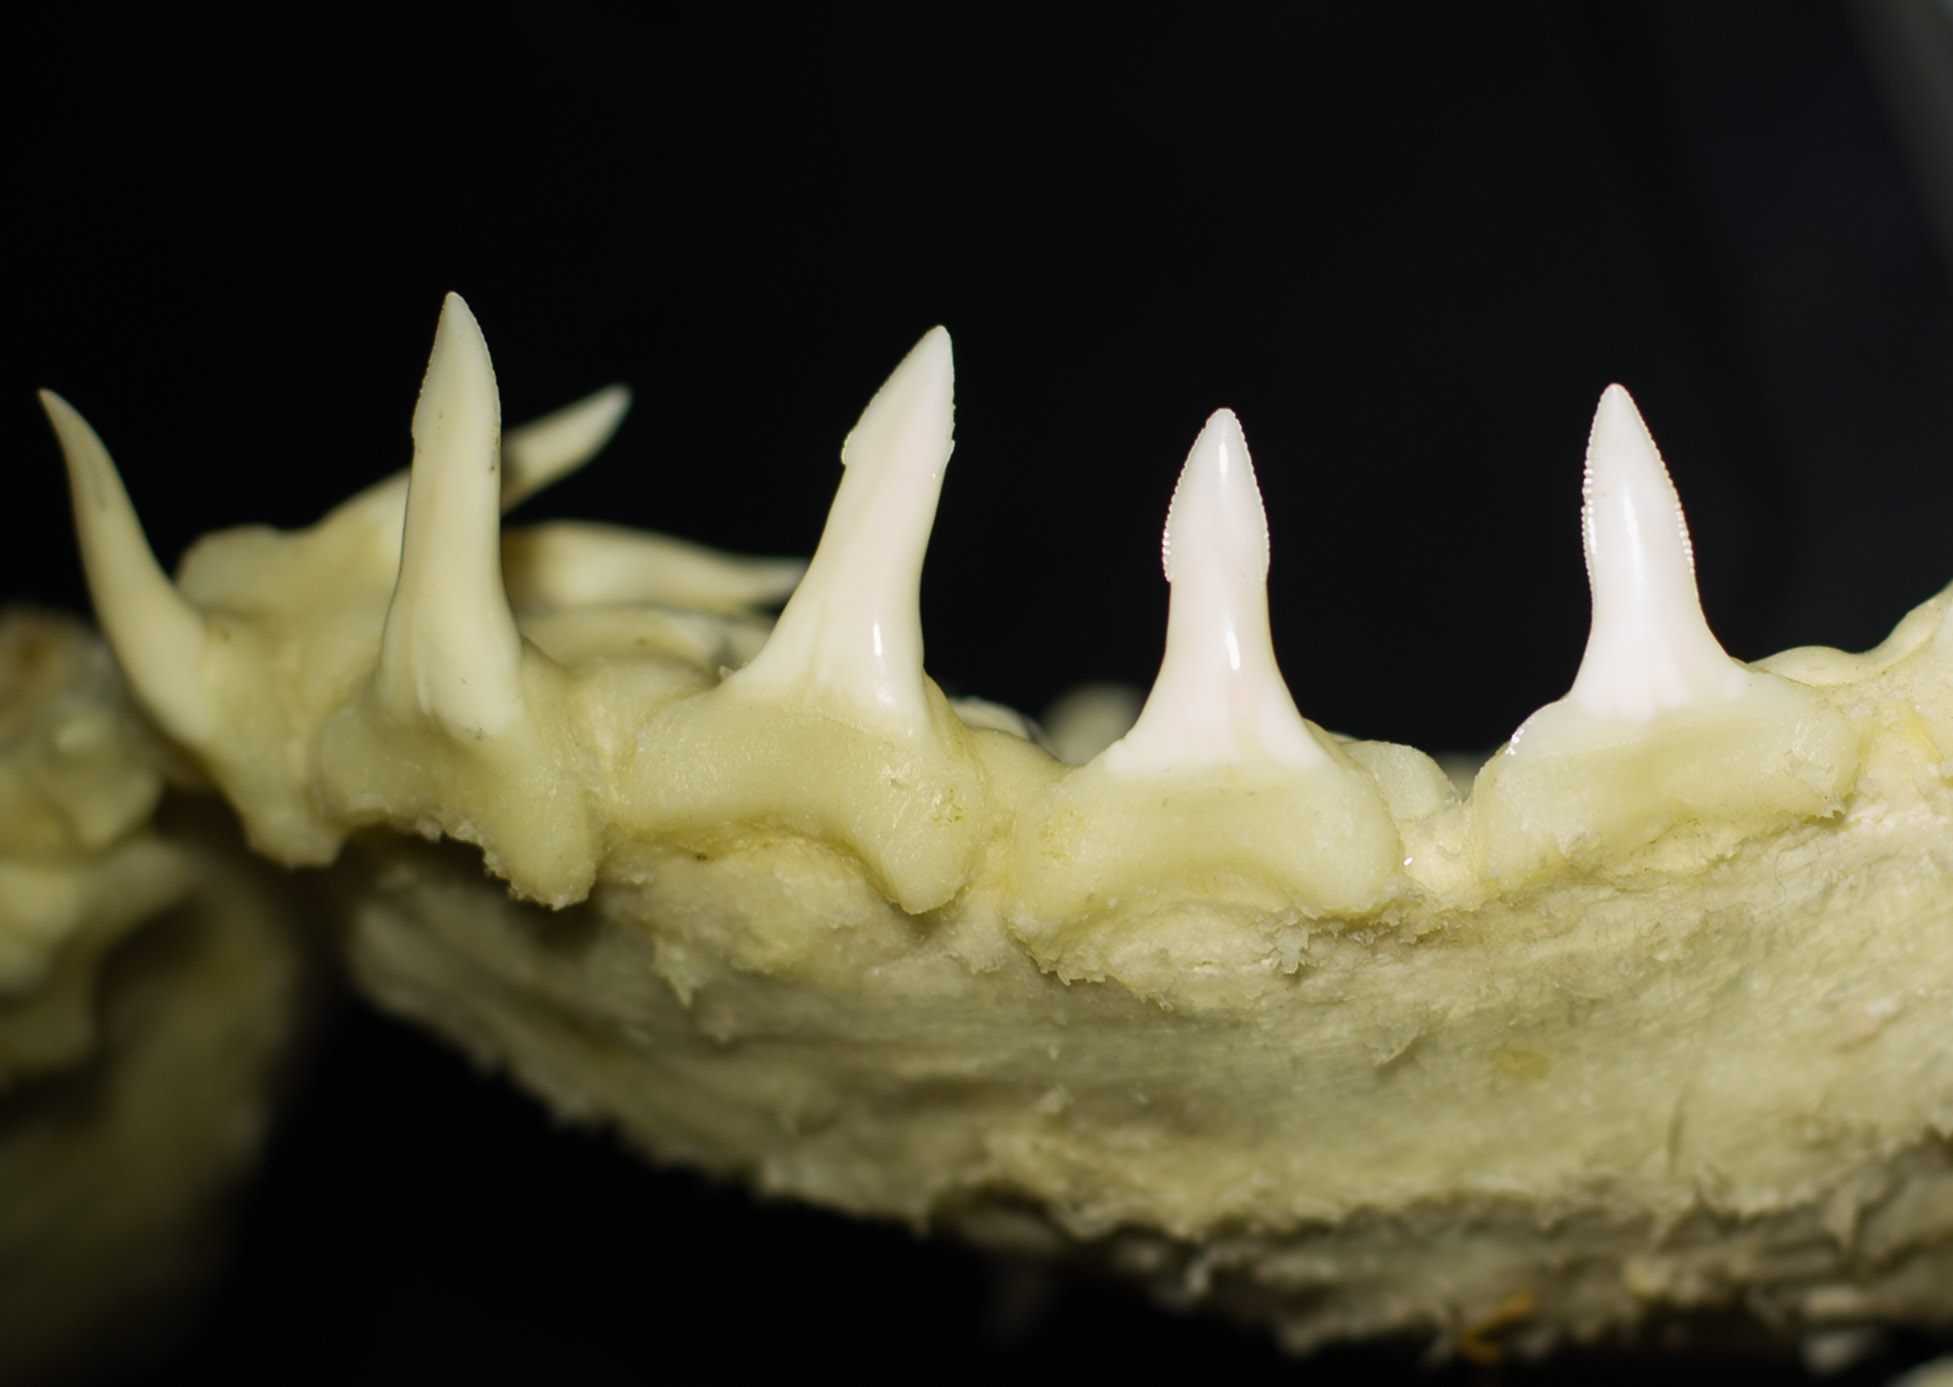 The lower teeth of the Speartooth Shark, which are long, narrow and erect with spear-like tips.